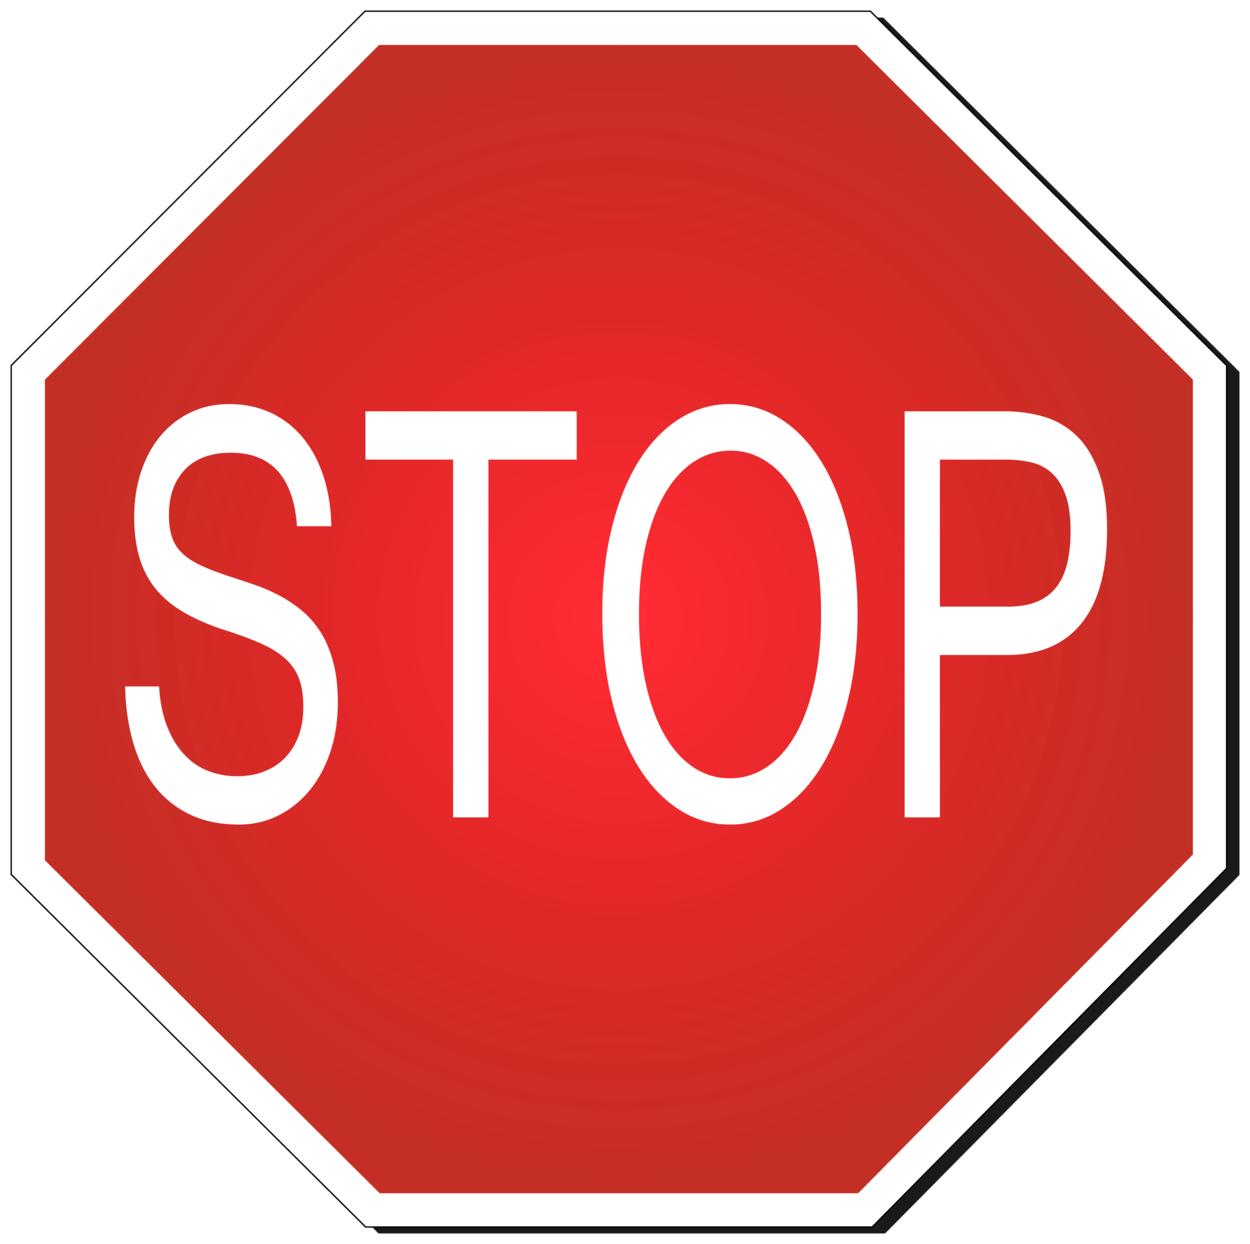 Stop Road Sign PNG Clipart